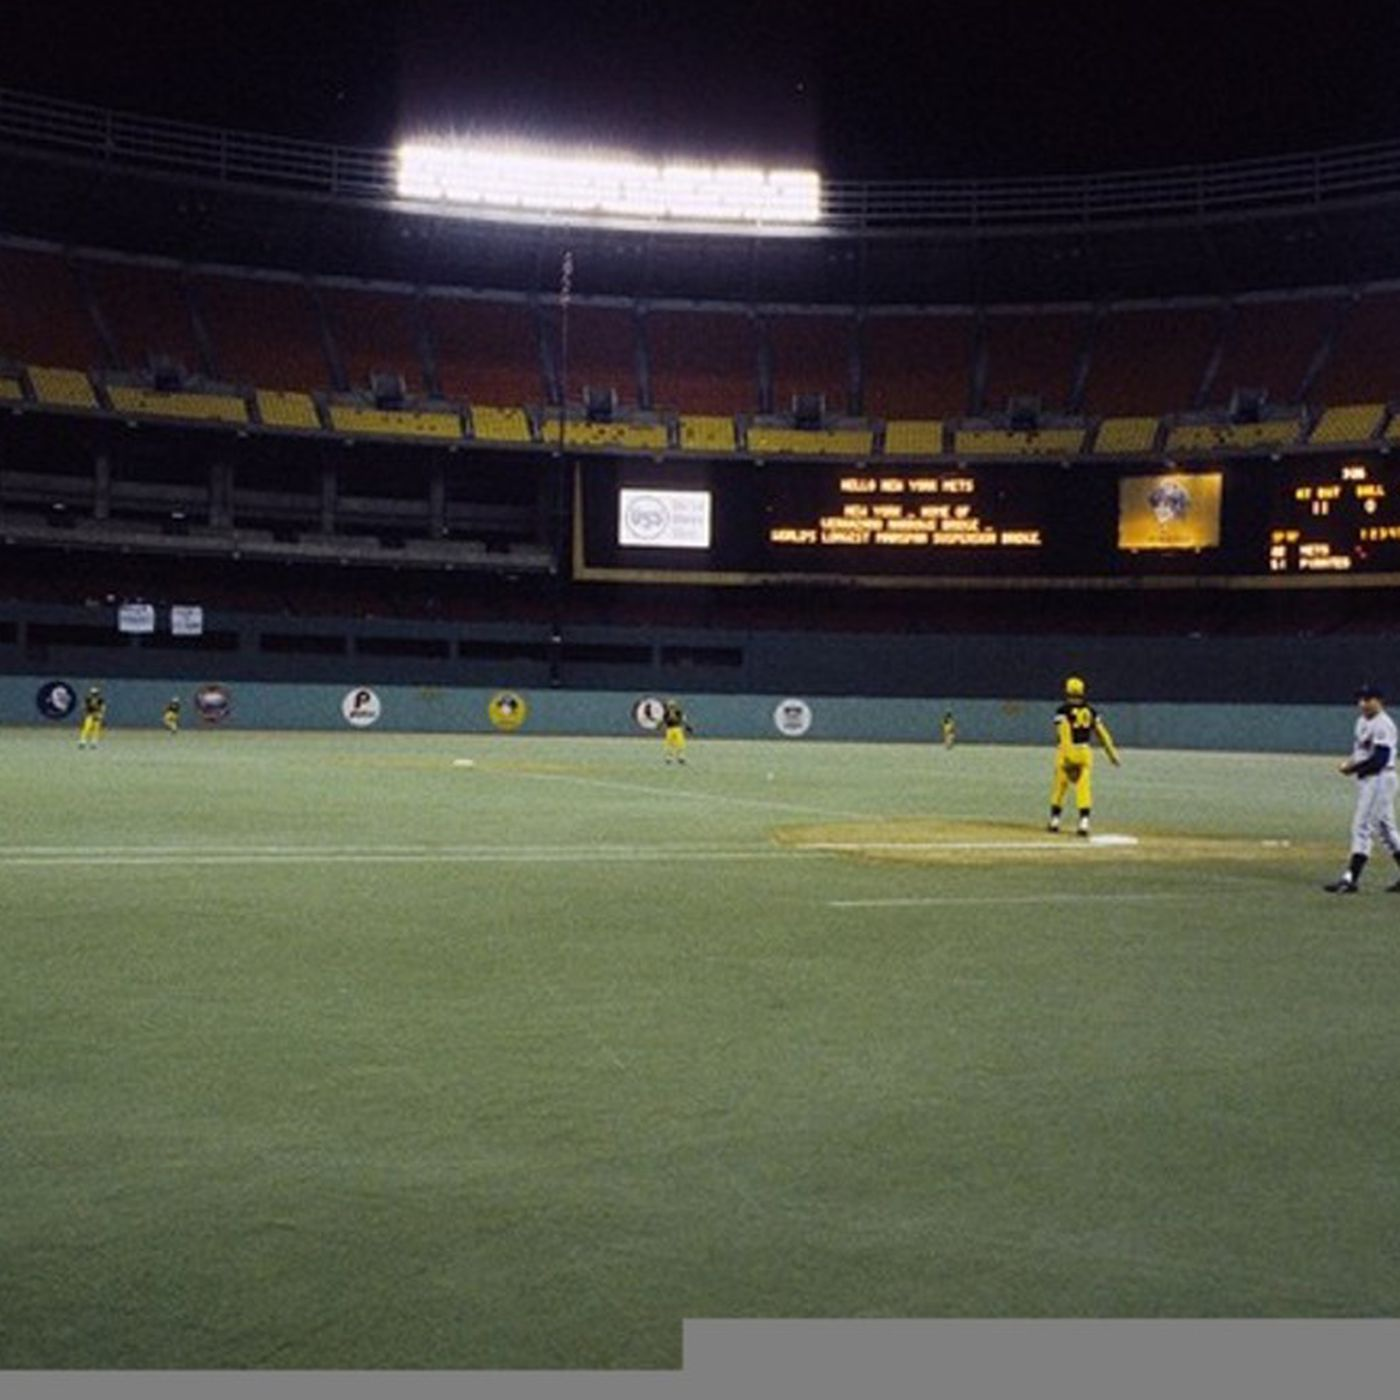 a0a8c2bed25 YouTube Clips Show Minnesota Vikings at Pittsburgh Steelers in 1972 at  Three Rivers Stadium